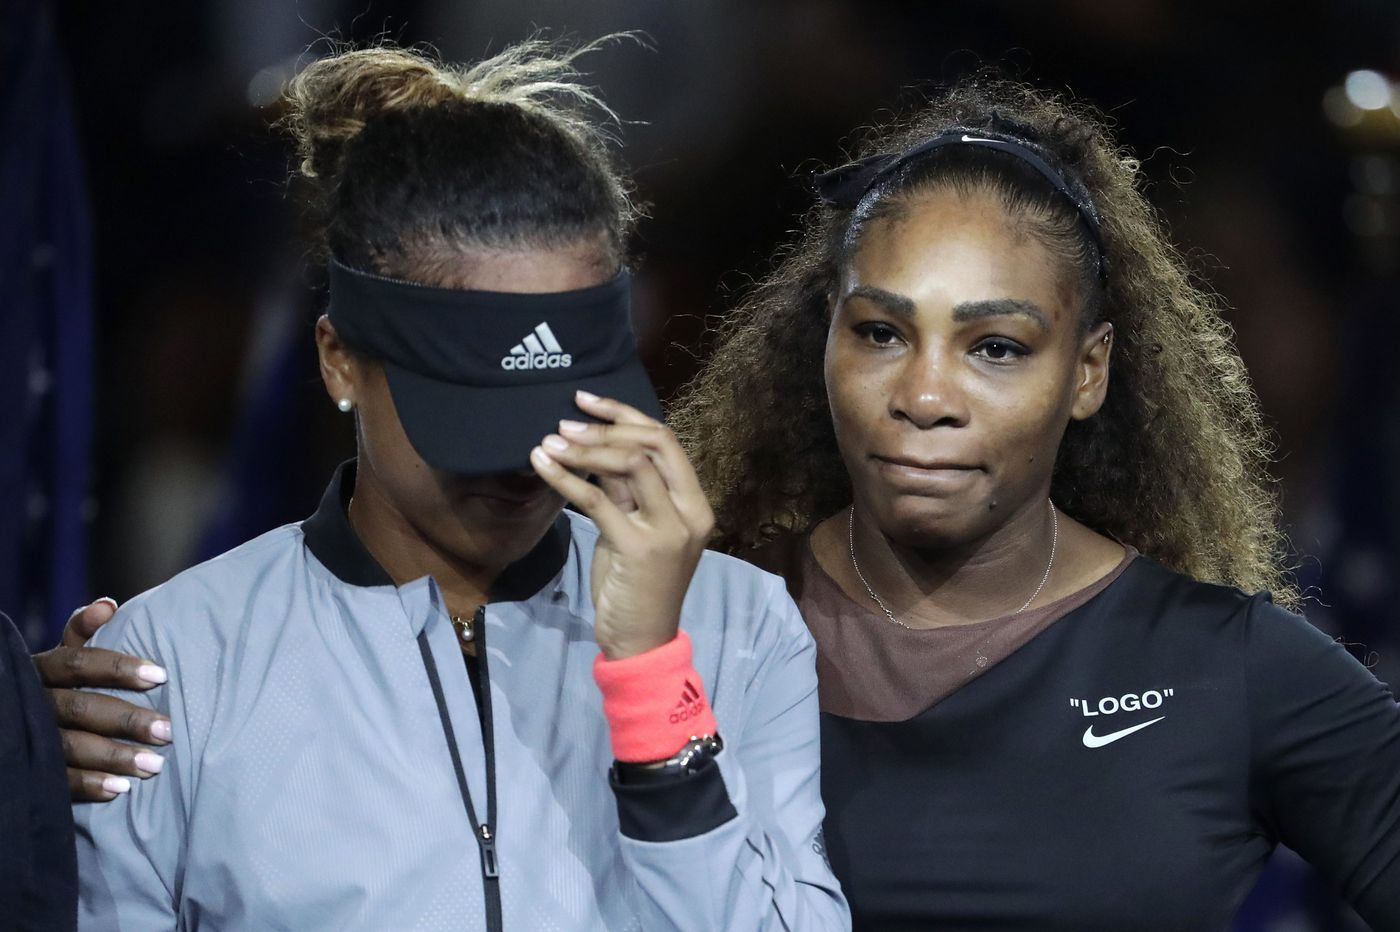 Serena Williams' loss is a fabulous, winning lesson for girls | Perspective